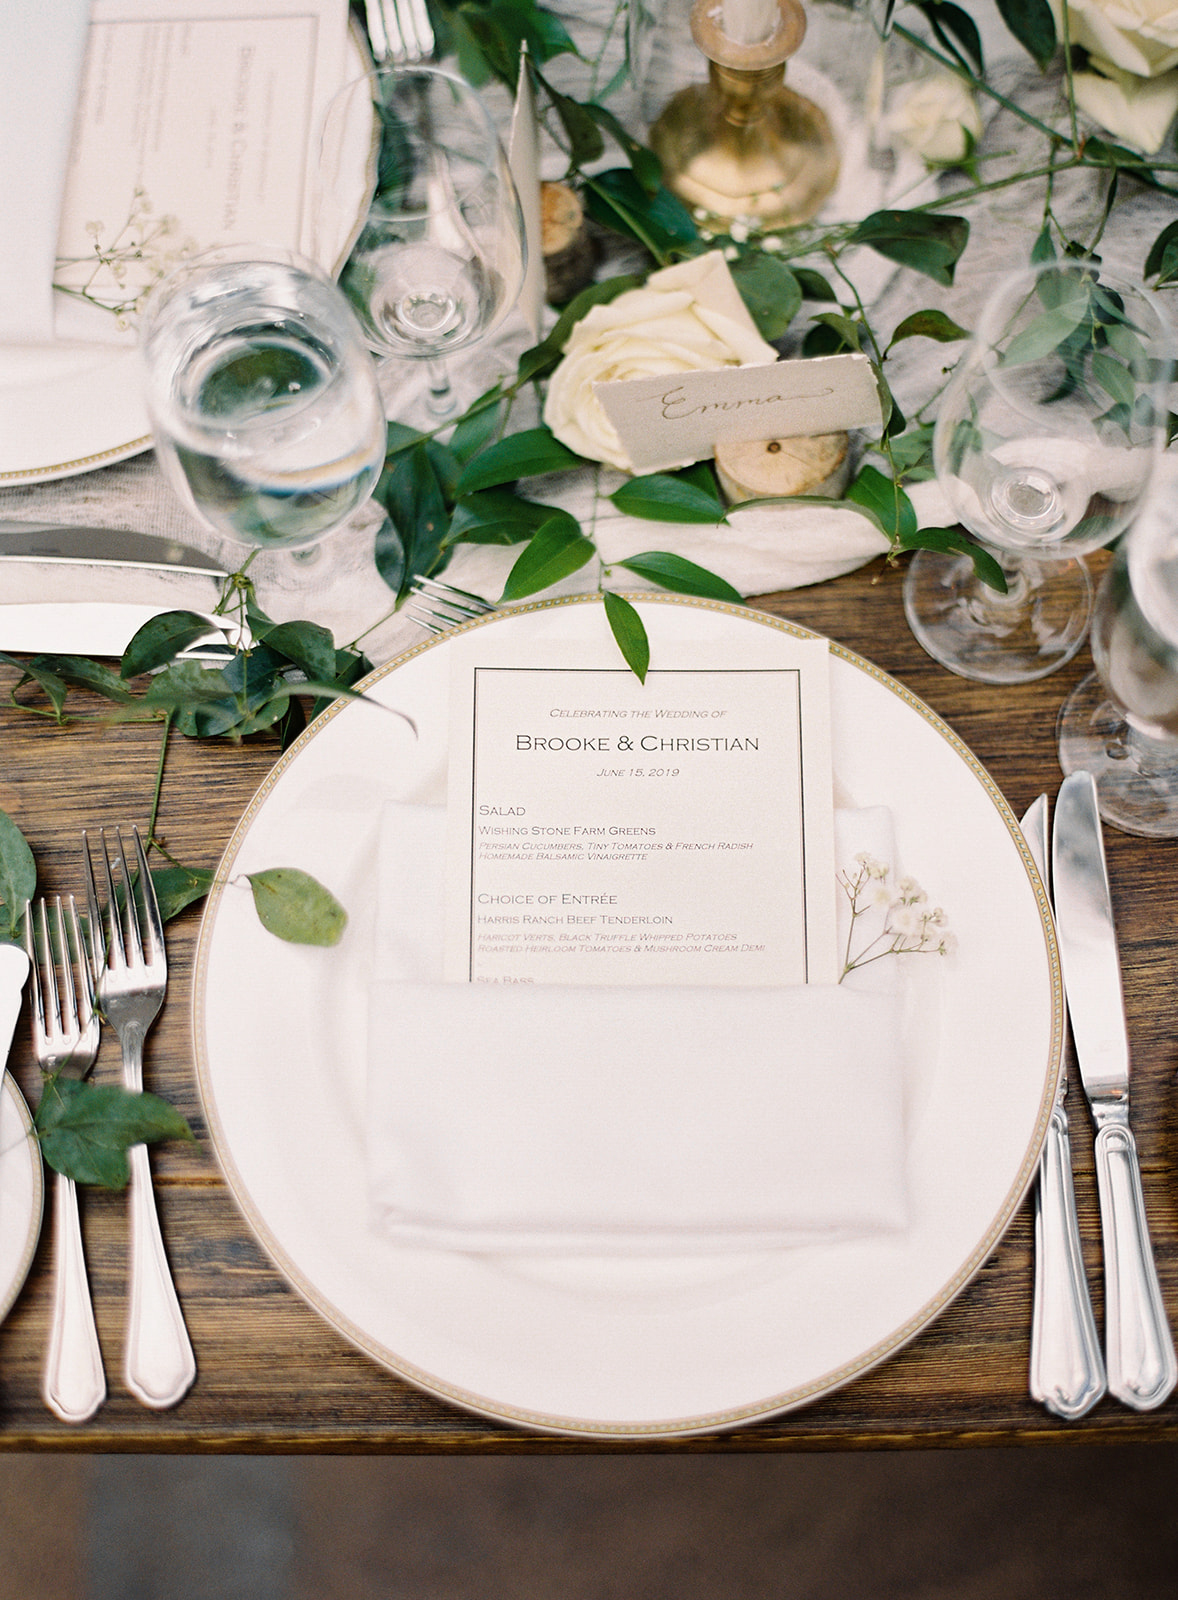 wedding reception wooden tables place setting floral arrangement menu